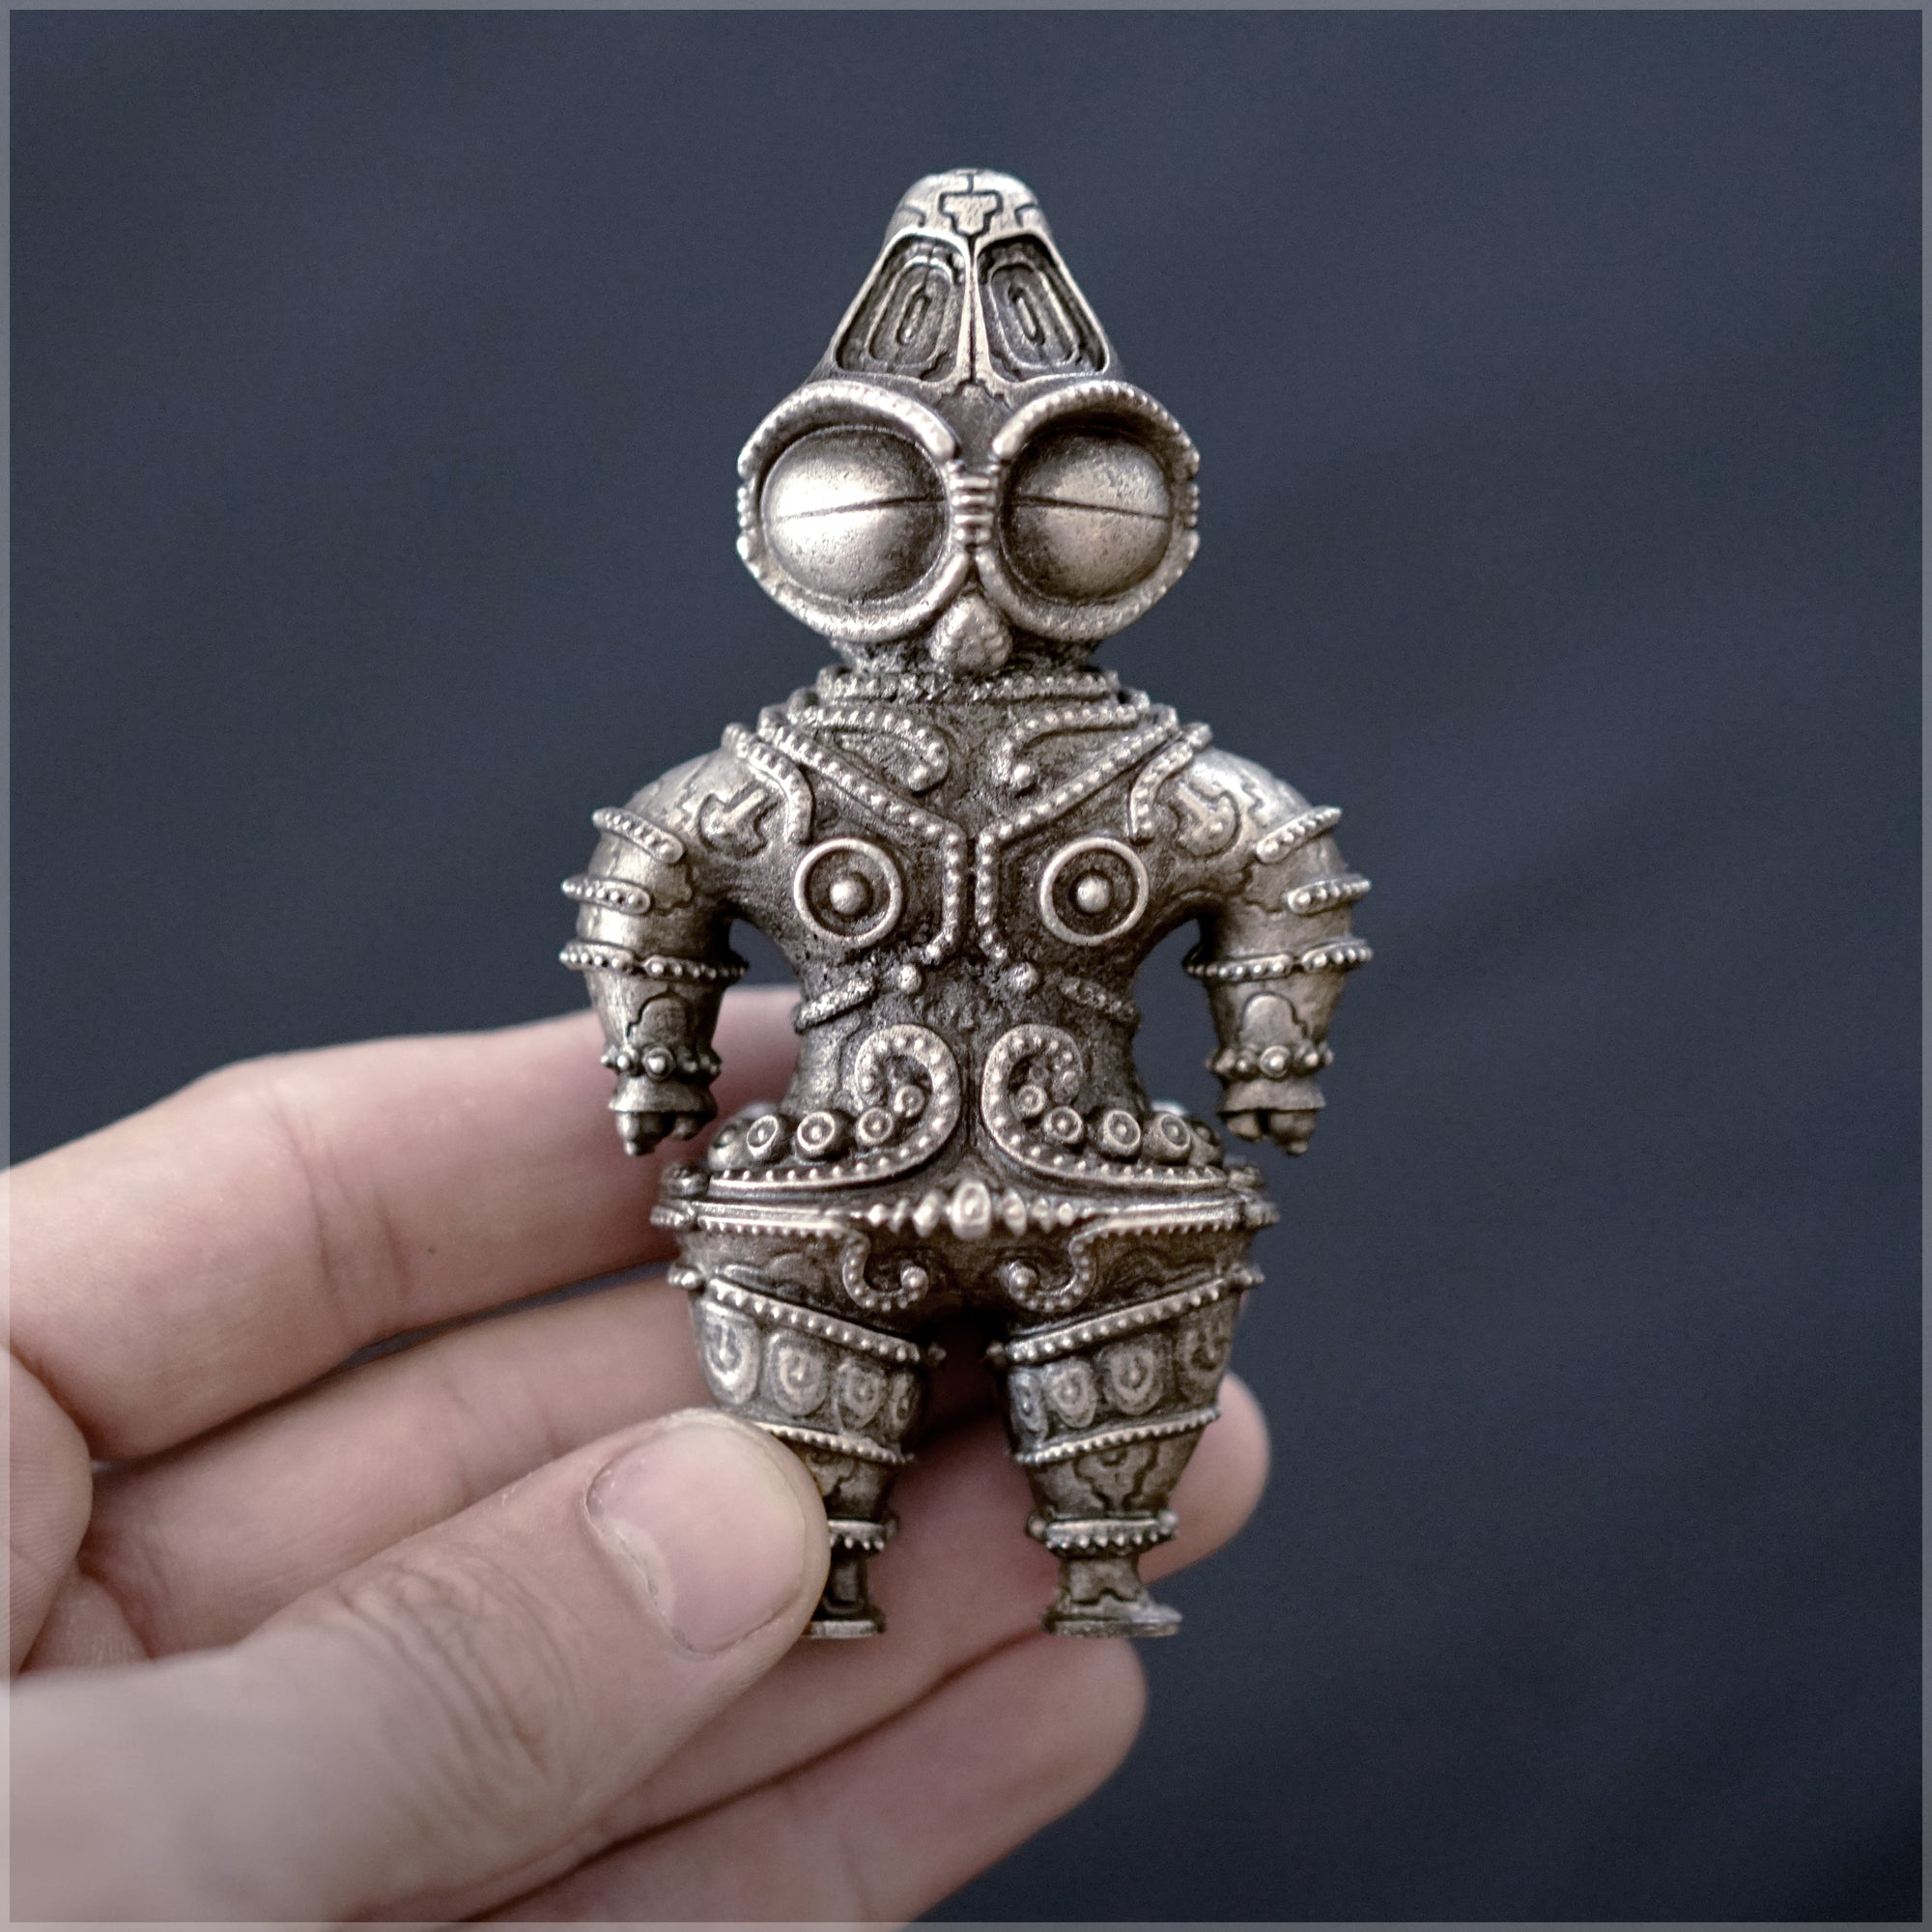 Skakoki Dogu Sculpture - Pewter Cast by Ben Ridgway